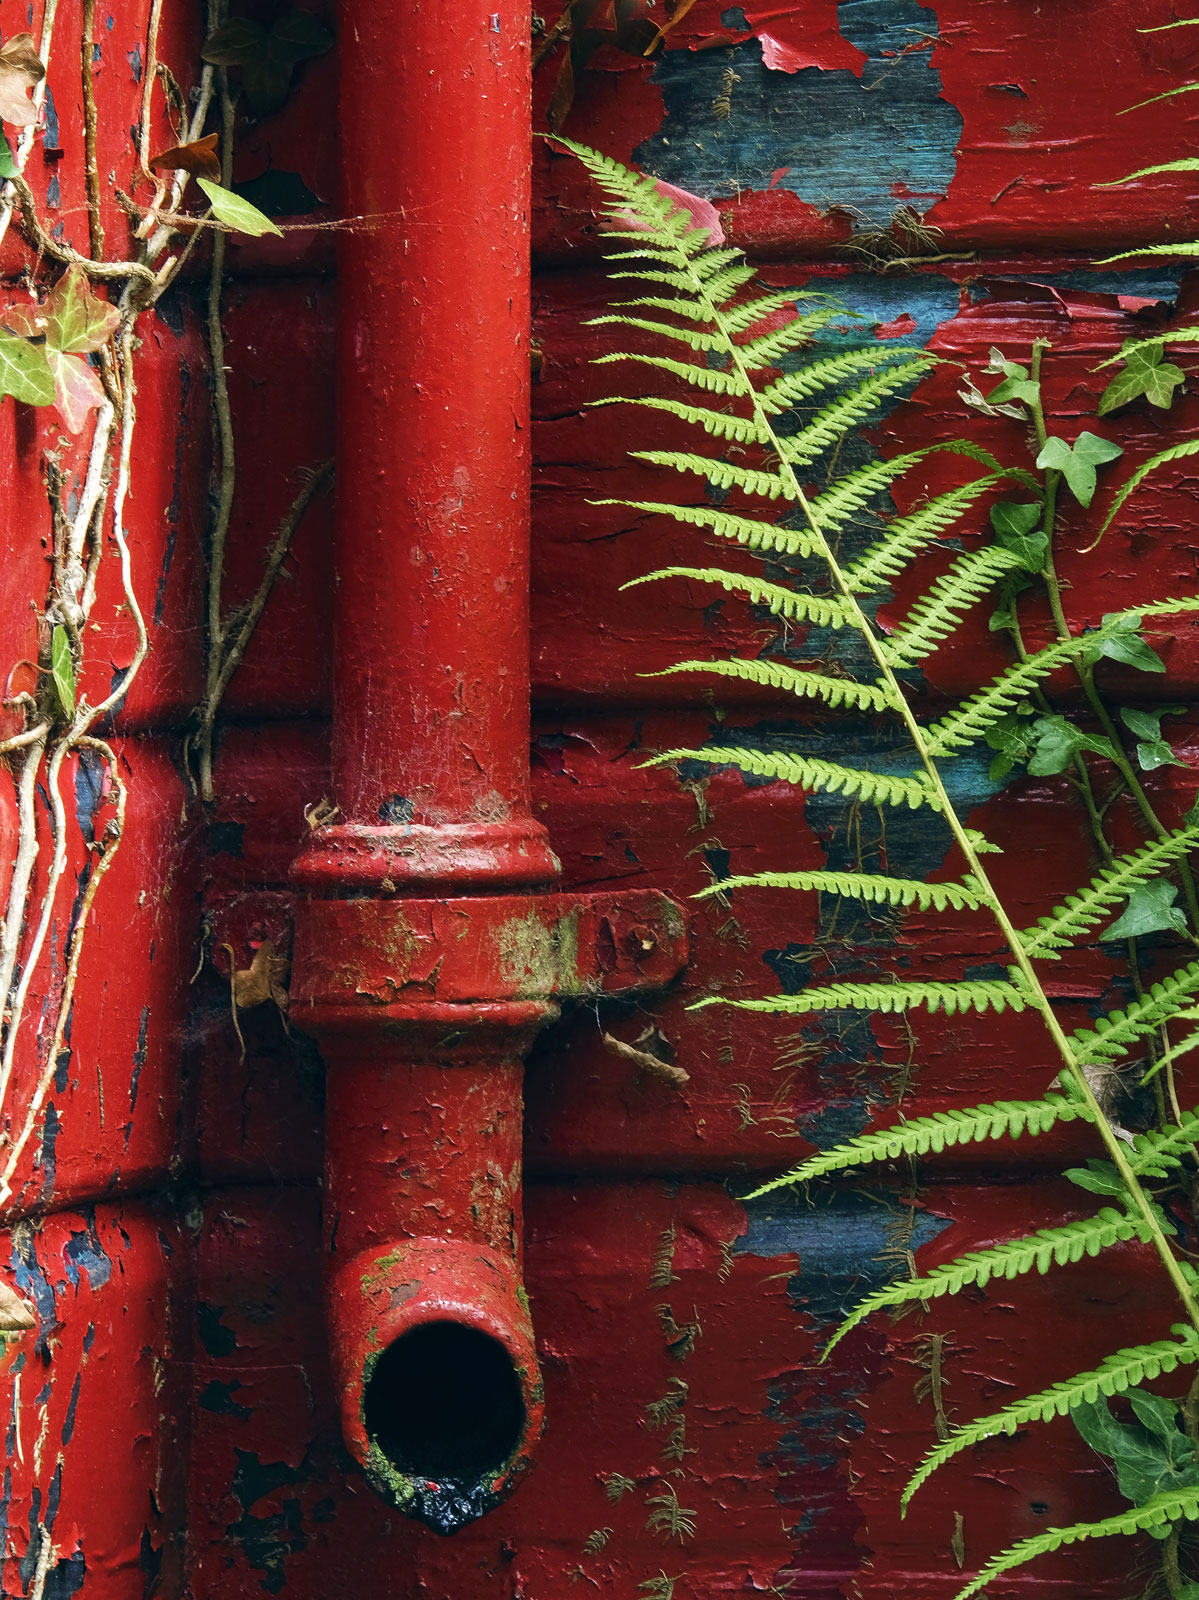 A storm drain attached to an old and decrepit boat shed at the edge of Blairs Loch in Forres. The shed is painted red currently...